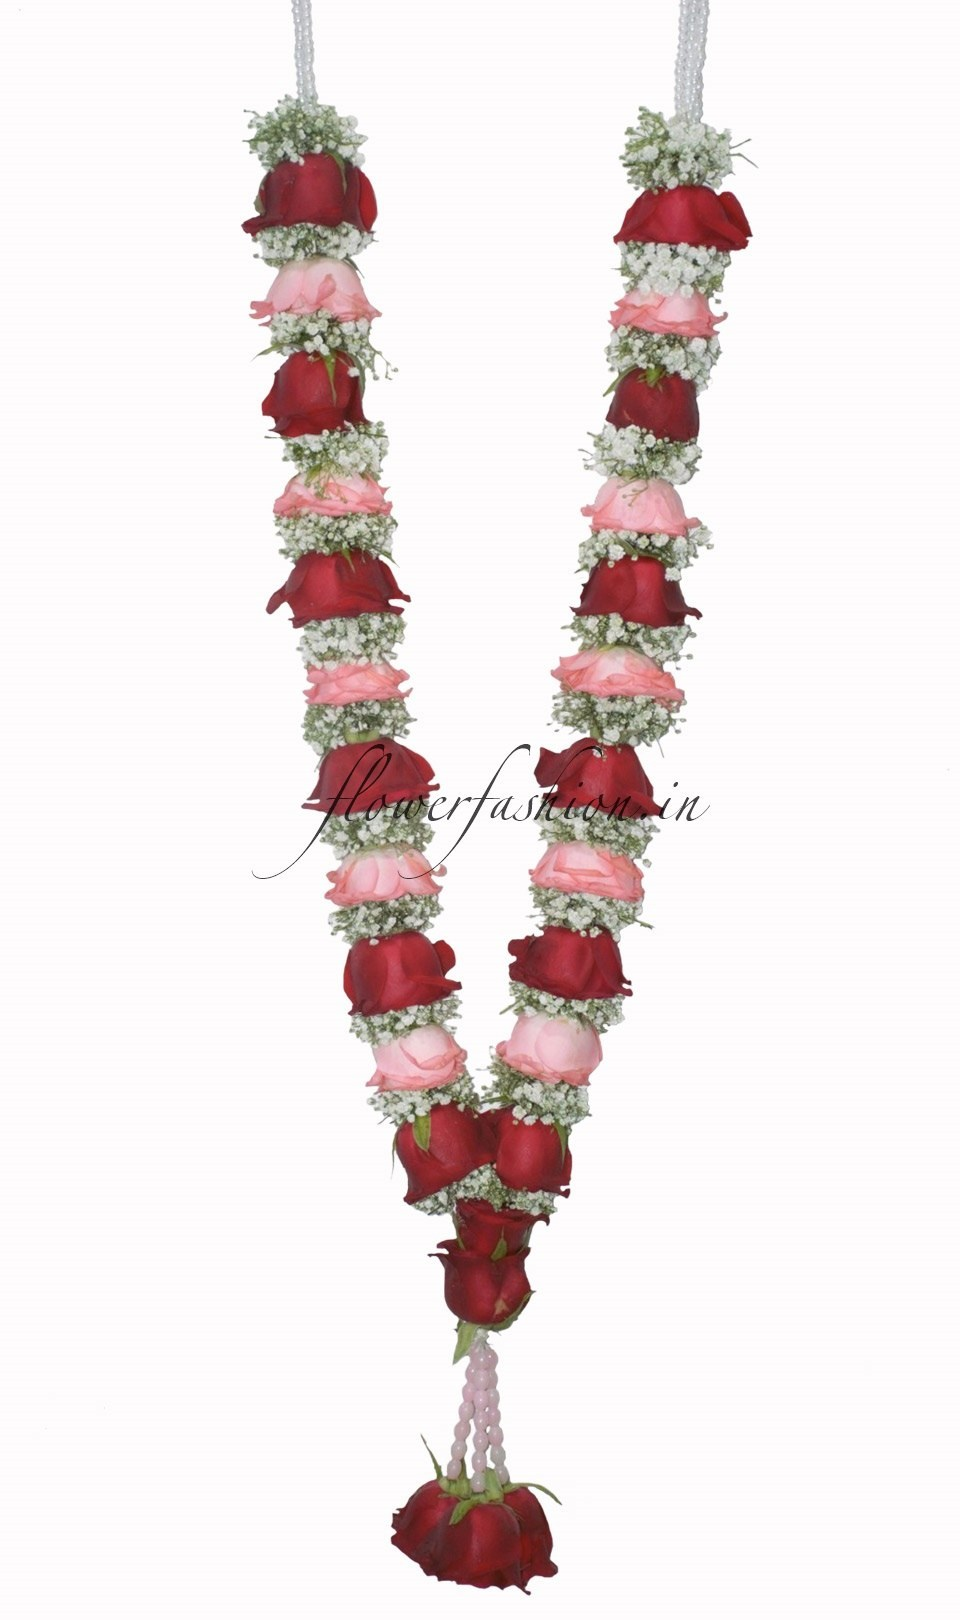 rose and baby's breath Flower garland